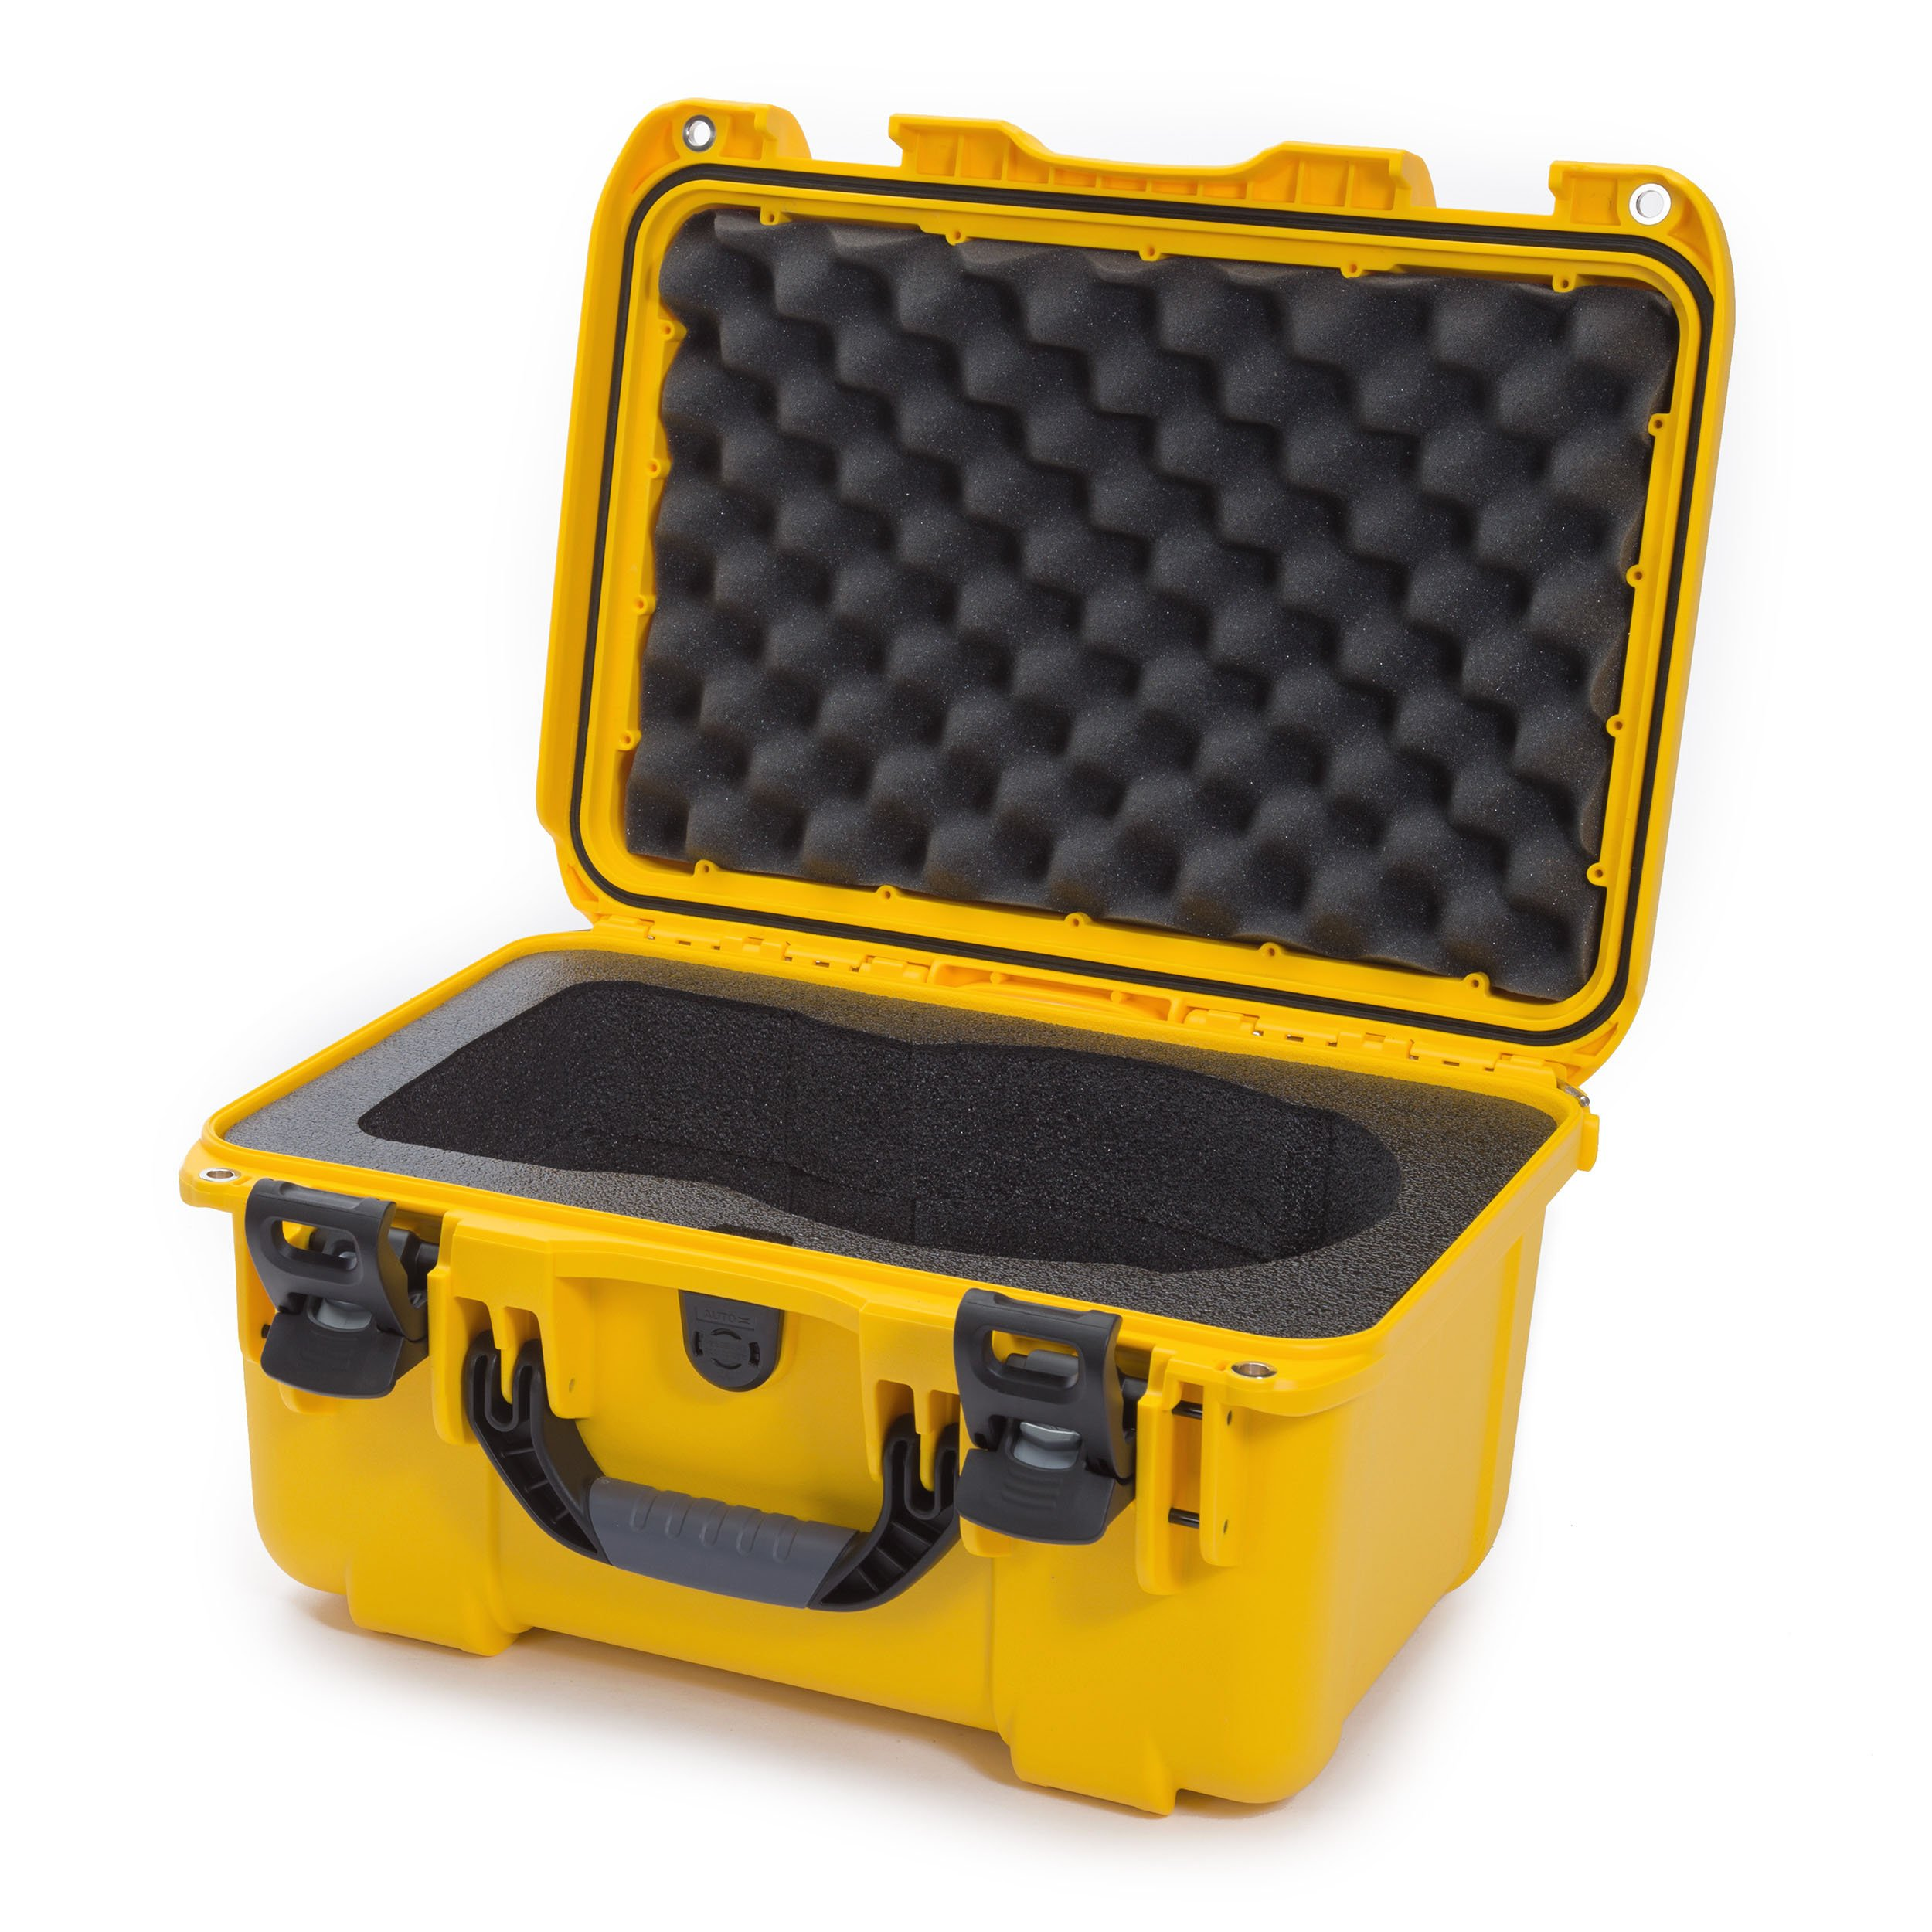 Nanuk 918-Goggles Hard Case with Foam Insert for DJI Goggles Camera, Yellow (918-GOGGLES4)